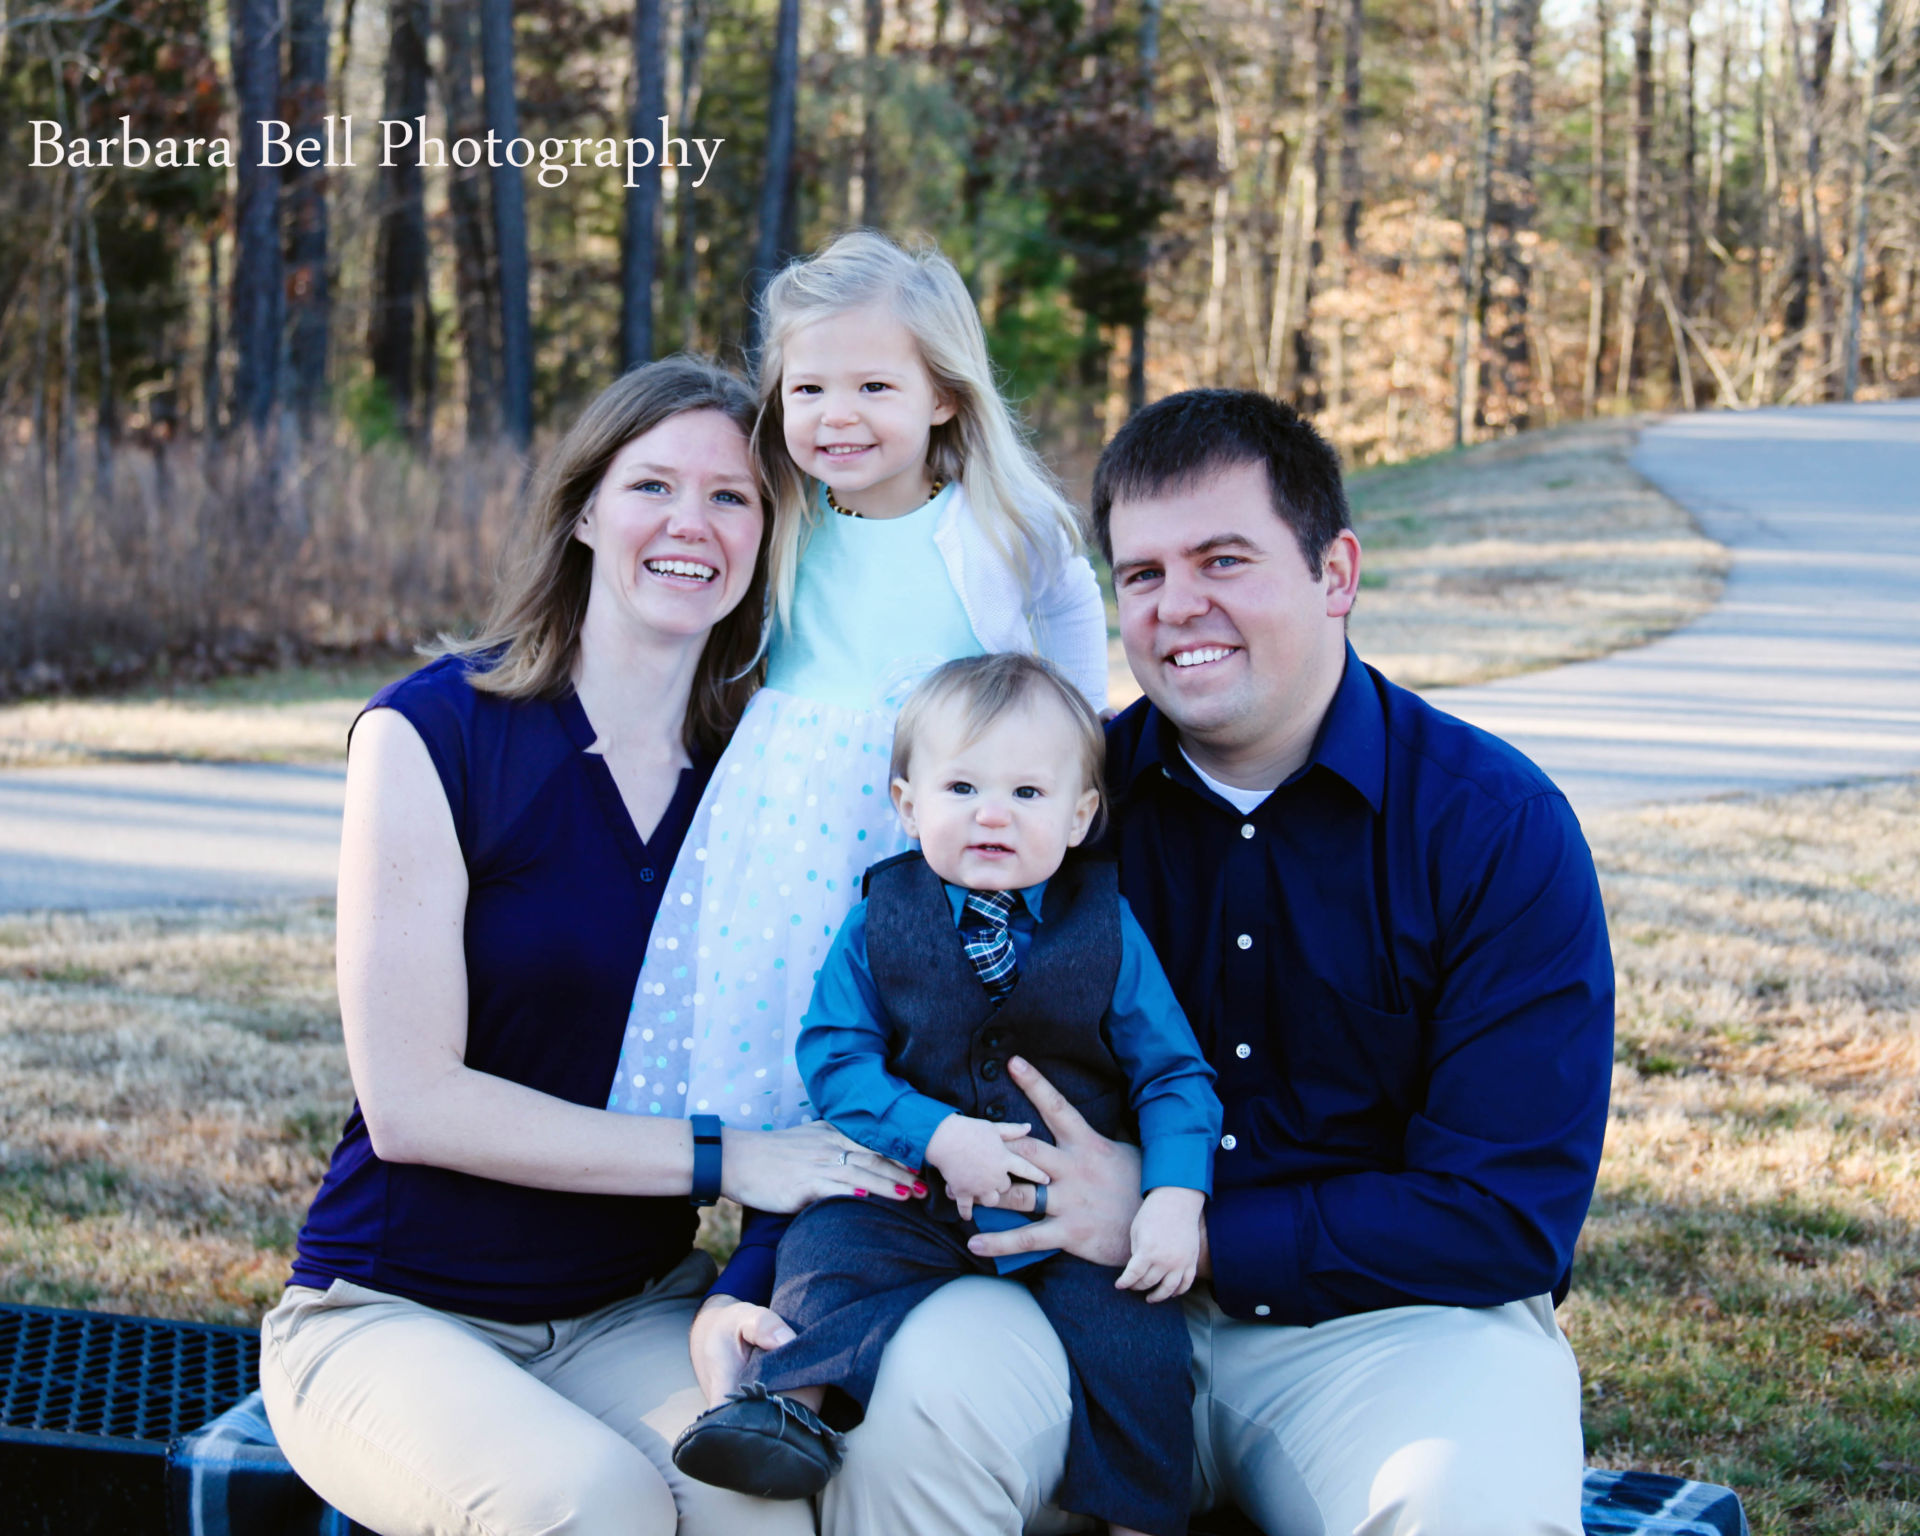 Family Portraits in Morrisville, North Carolina